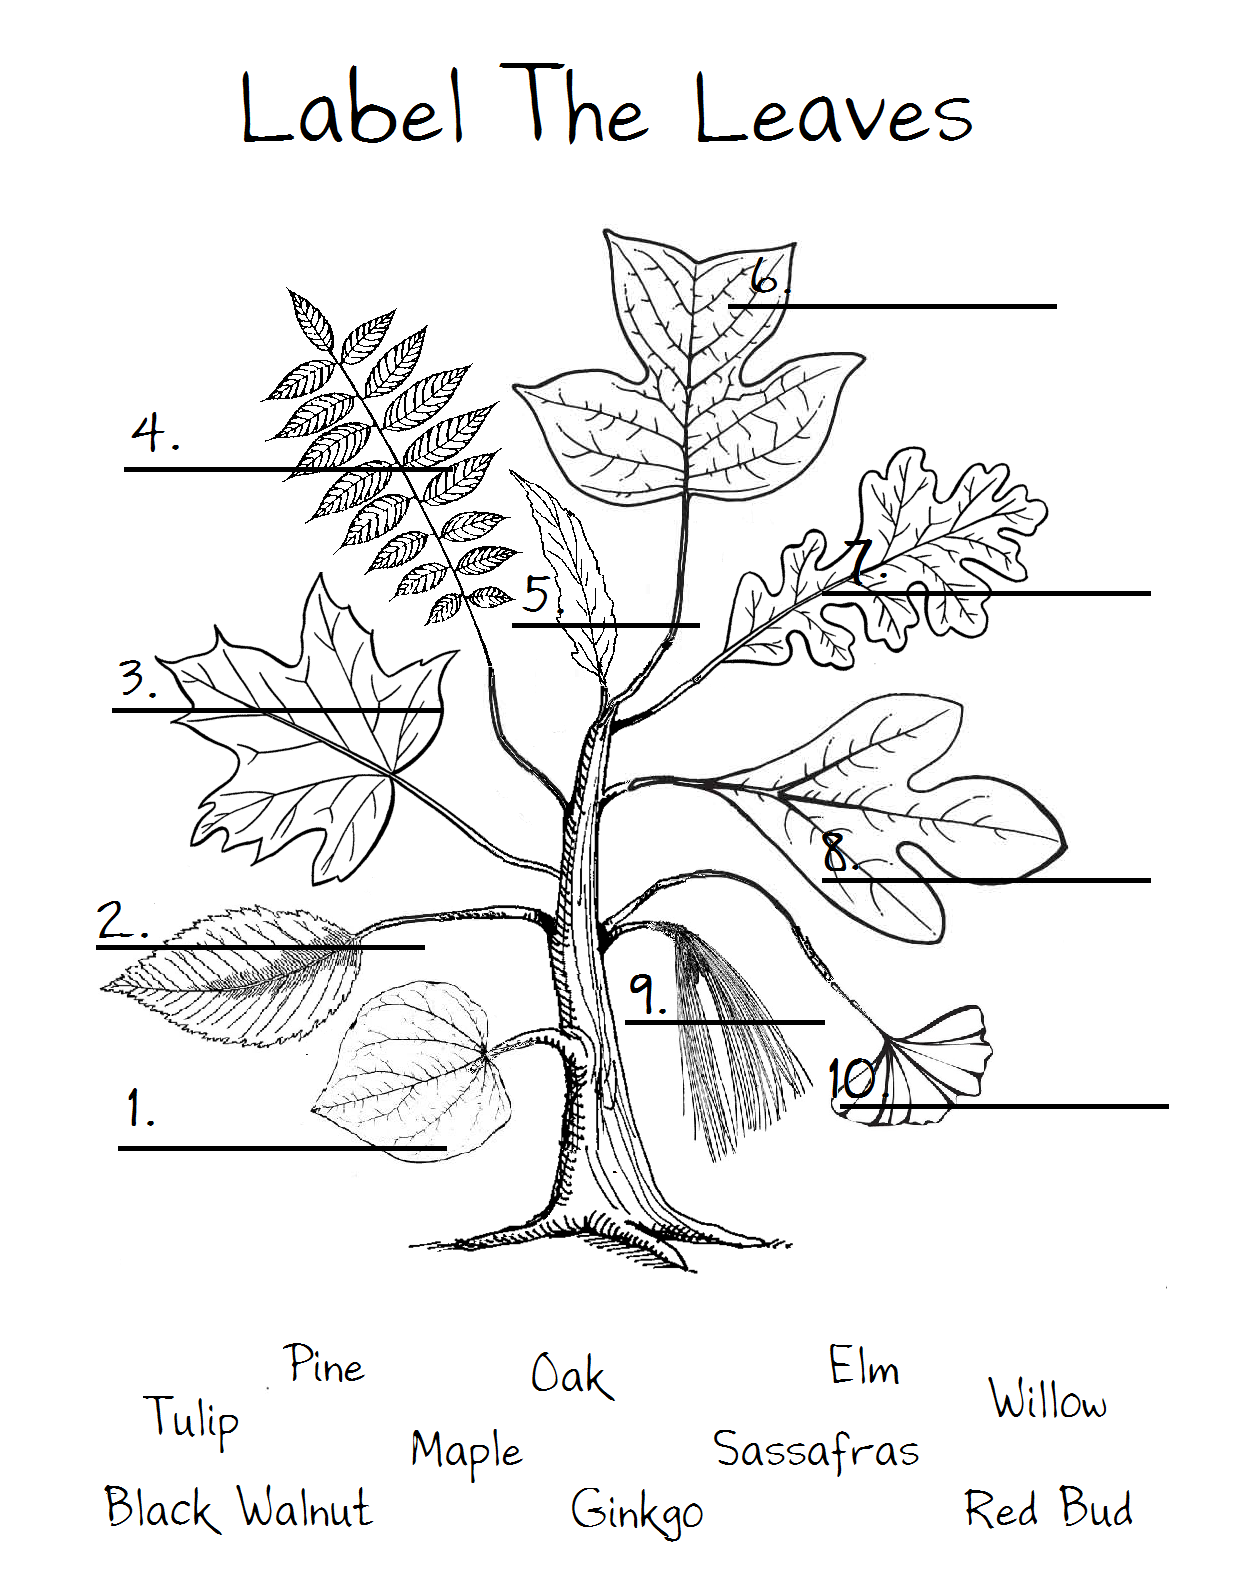 Redbud tree coloring pages ~ 1. red bud 2. elm 3. maple 4. black walnut 5. willow 6 ...